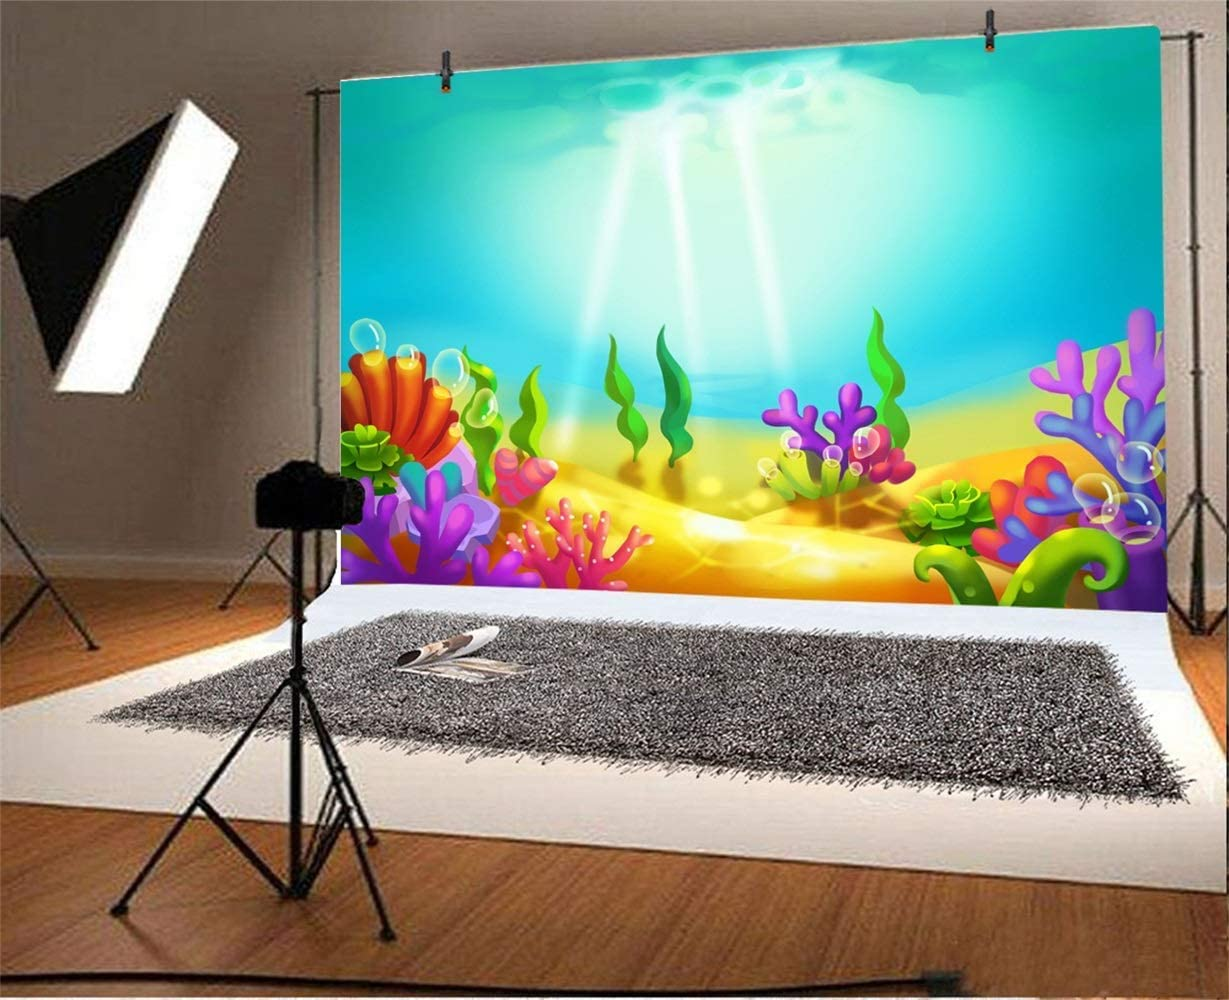 Cartoon Seabed Backdrop Polyester 10x6.5ft Fairytale Sunshine Light Beams Go Through The Blue Seawater Sea Plants Colorful Corals Gloden Seafloor Background Baby Birthday Party Banner Cake Smash